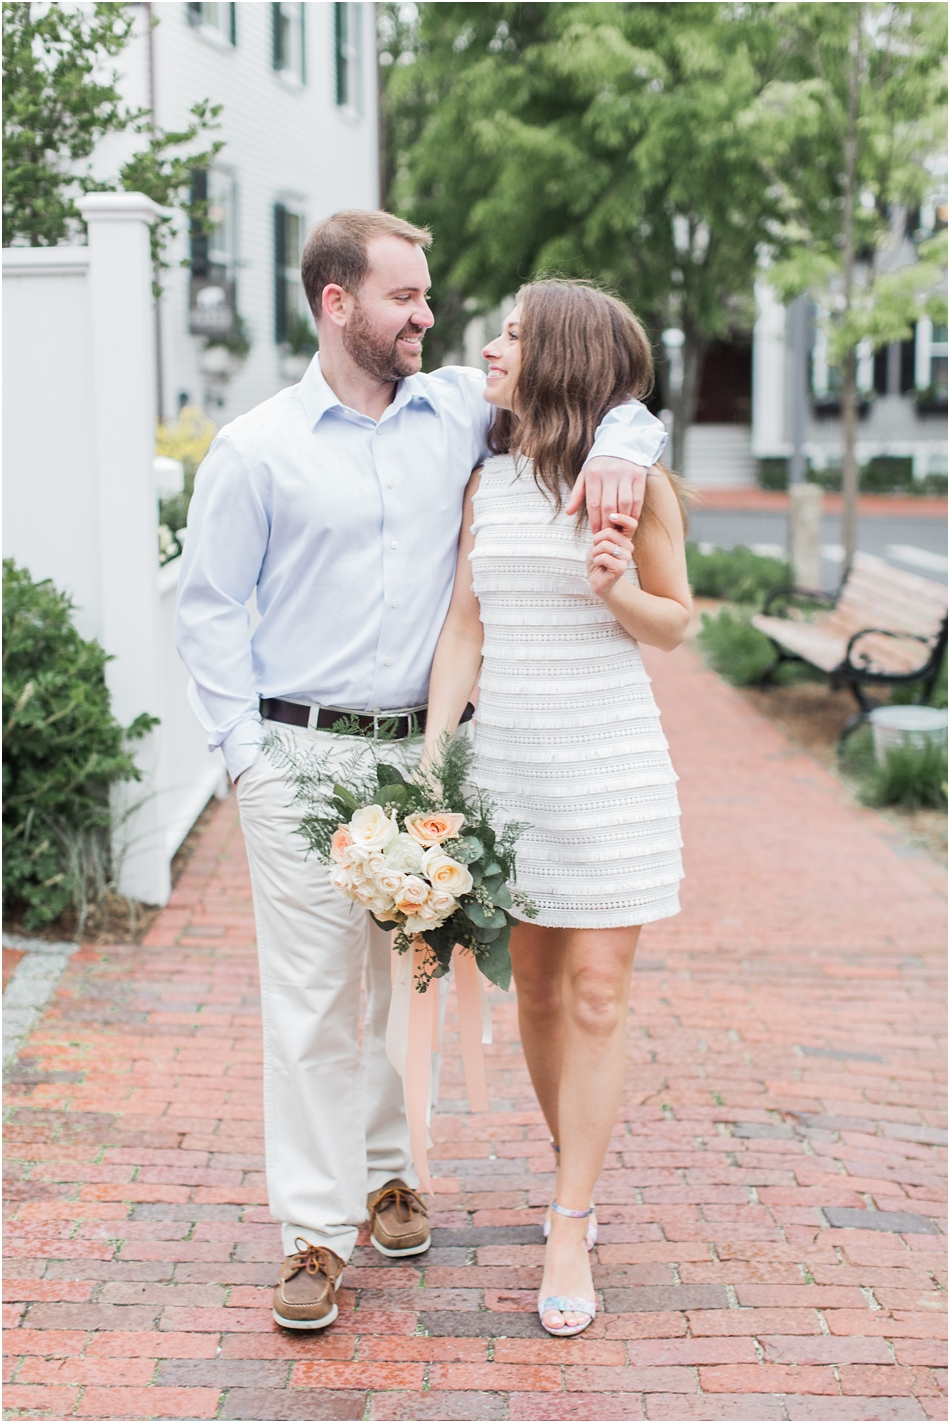 nantucket_engagement_session_downtown_bike_basket_breezer_downtown_8_boston_massachusetts_cape_cod_new_england_wedding_photographer_Meredith_Jane_Photography_photo_1450.jpg